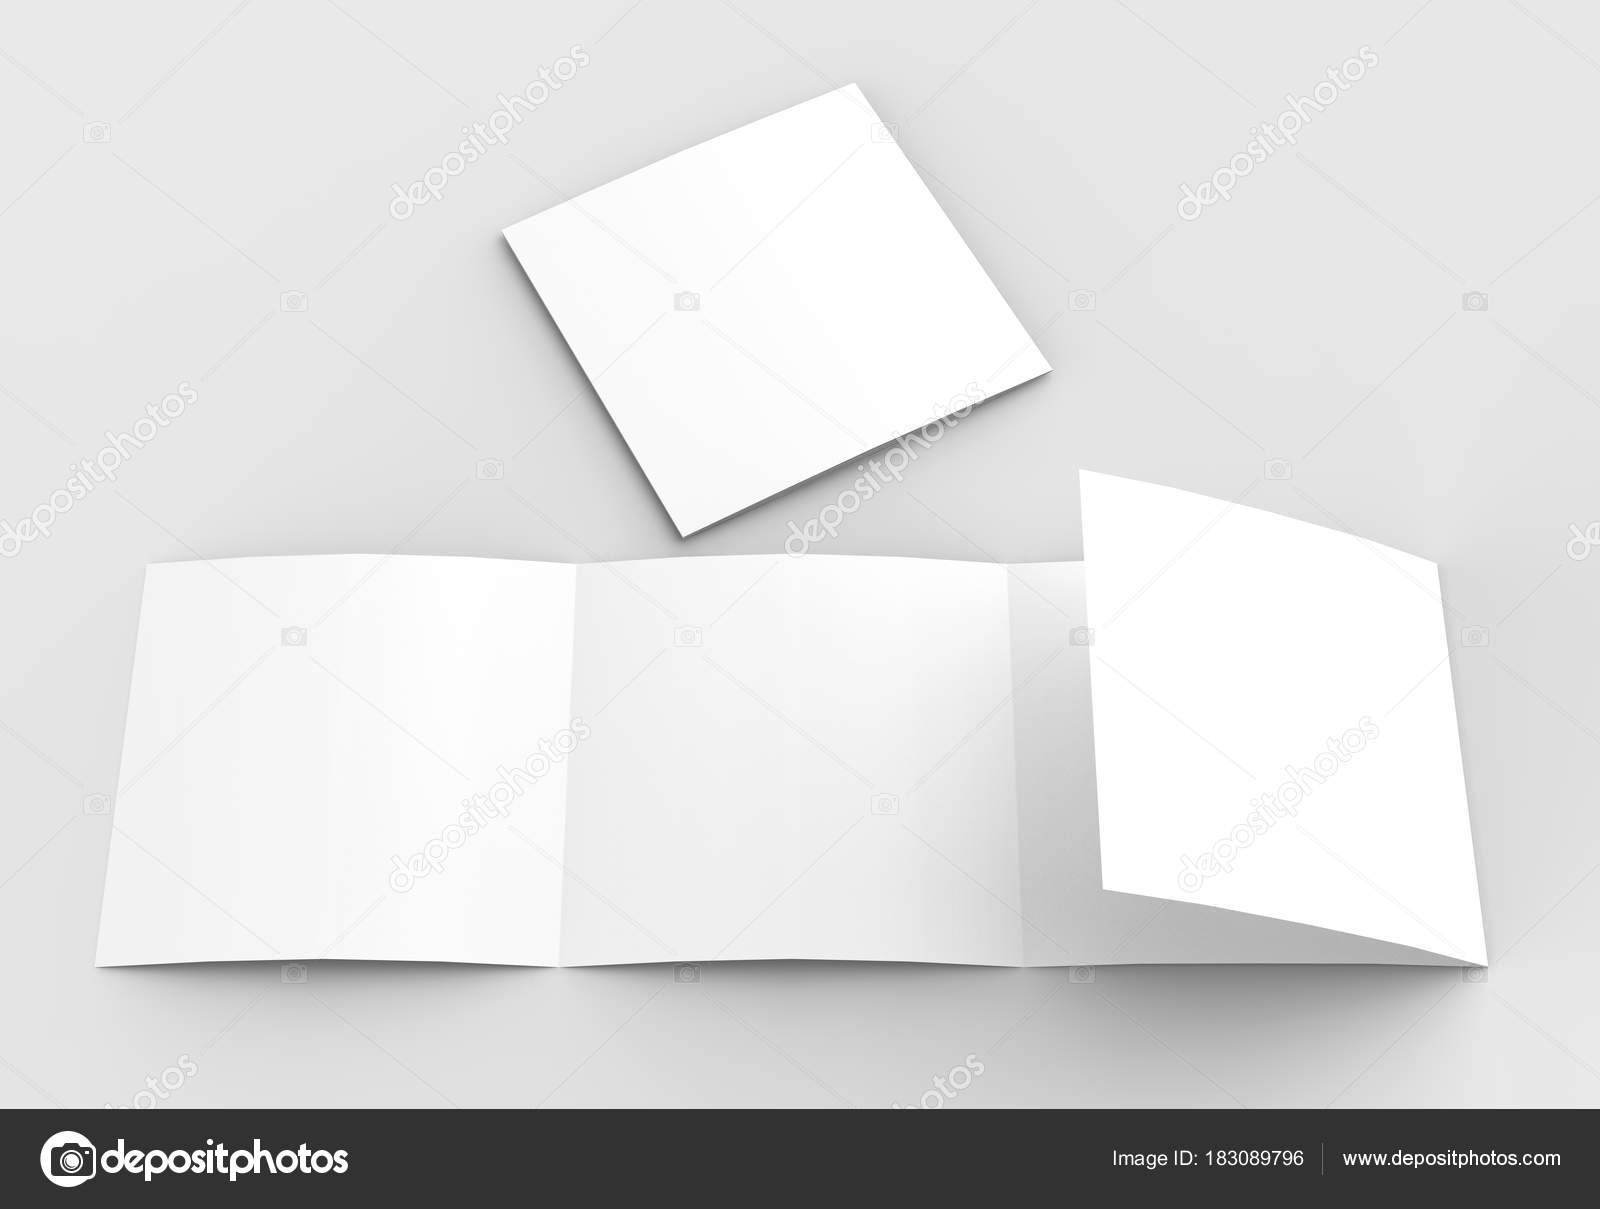 square four folded 4 fold brochure mock up isolated on soft